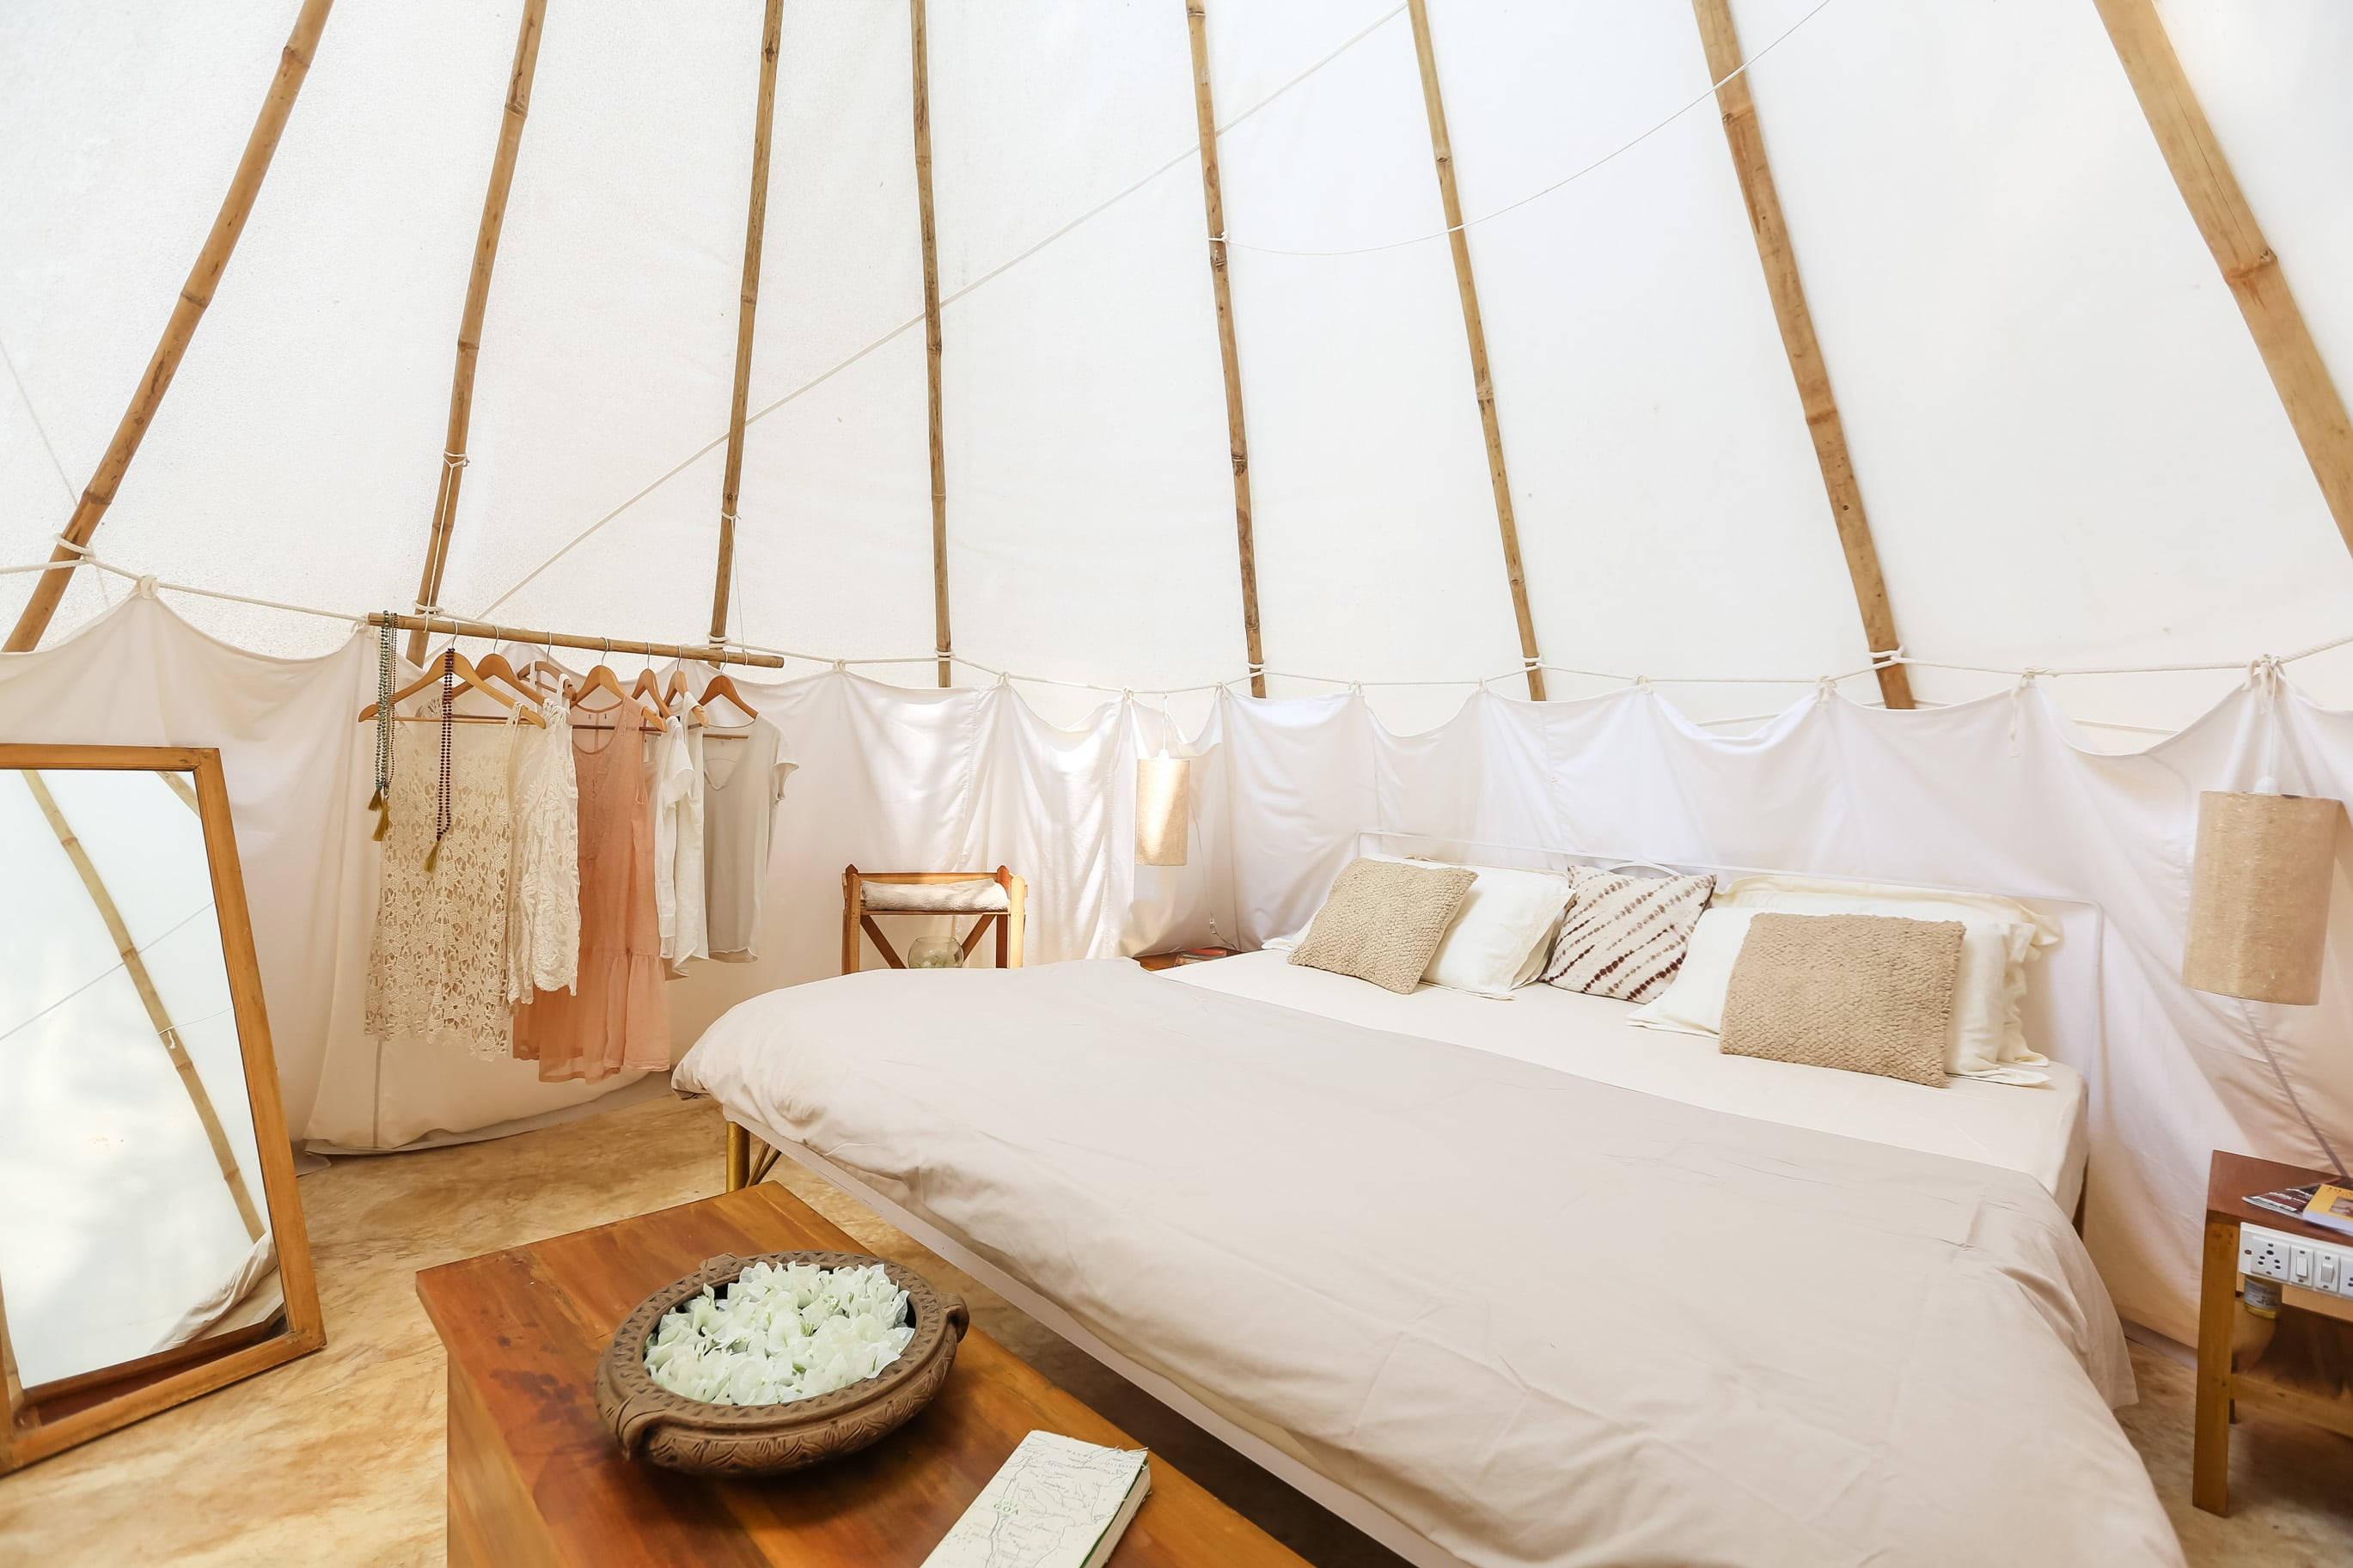 glamping in luxury teepee tents in south goa india